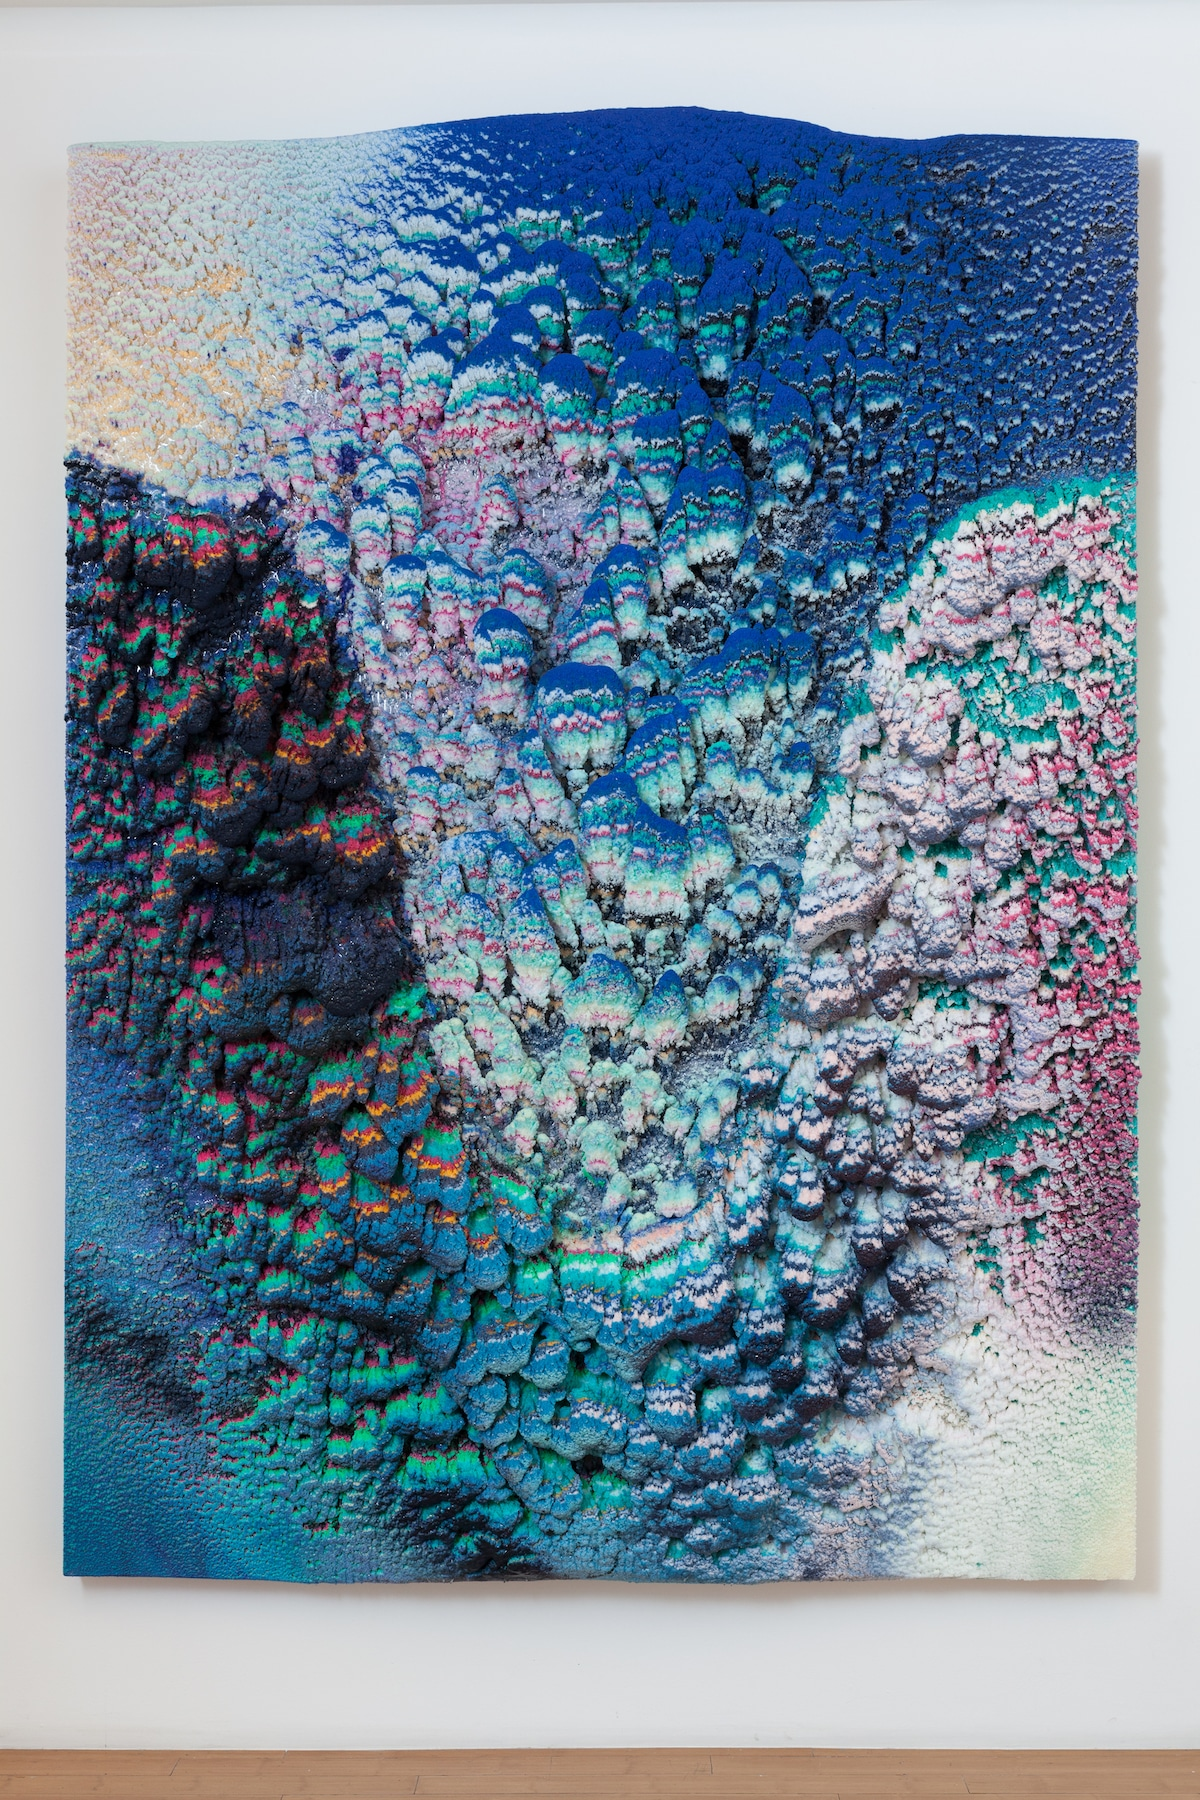 Colorful Wax Paintings by Dylan Gebbia-Richards